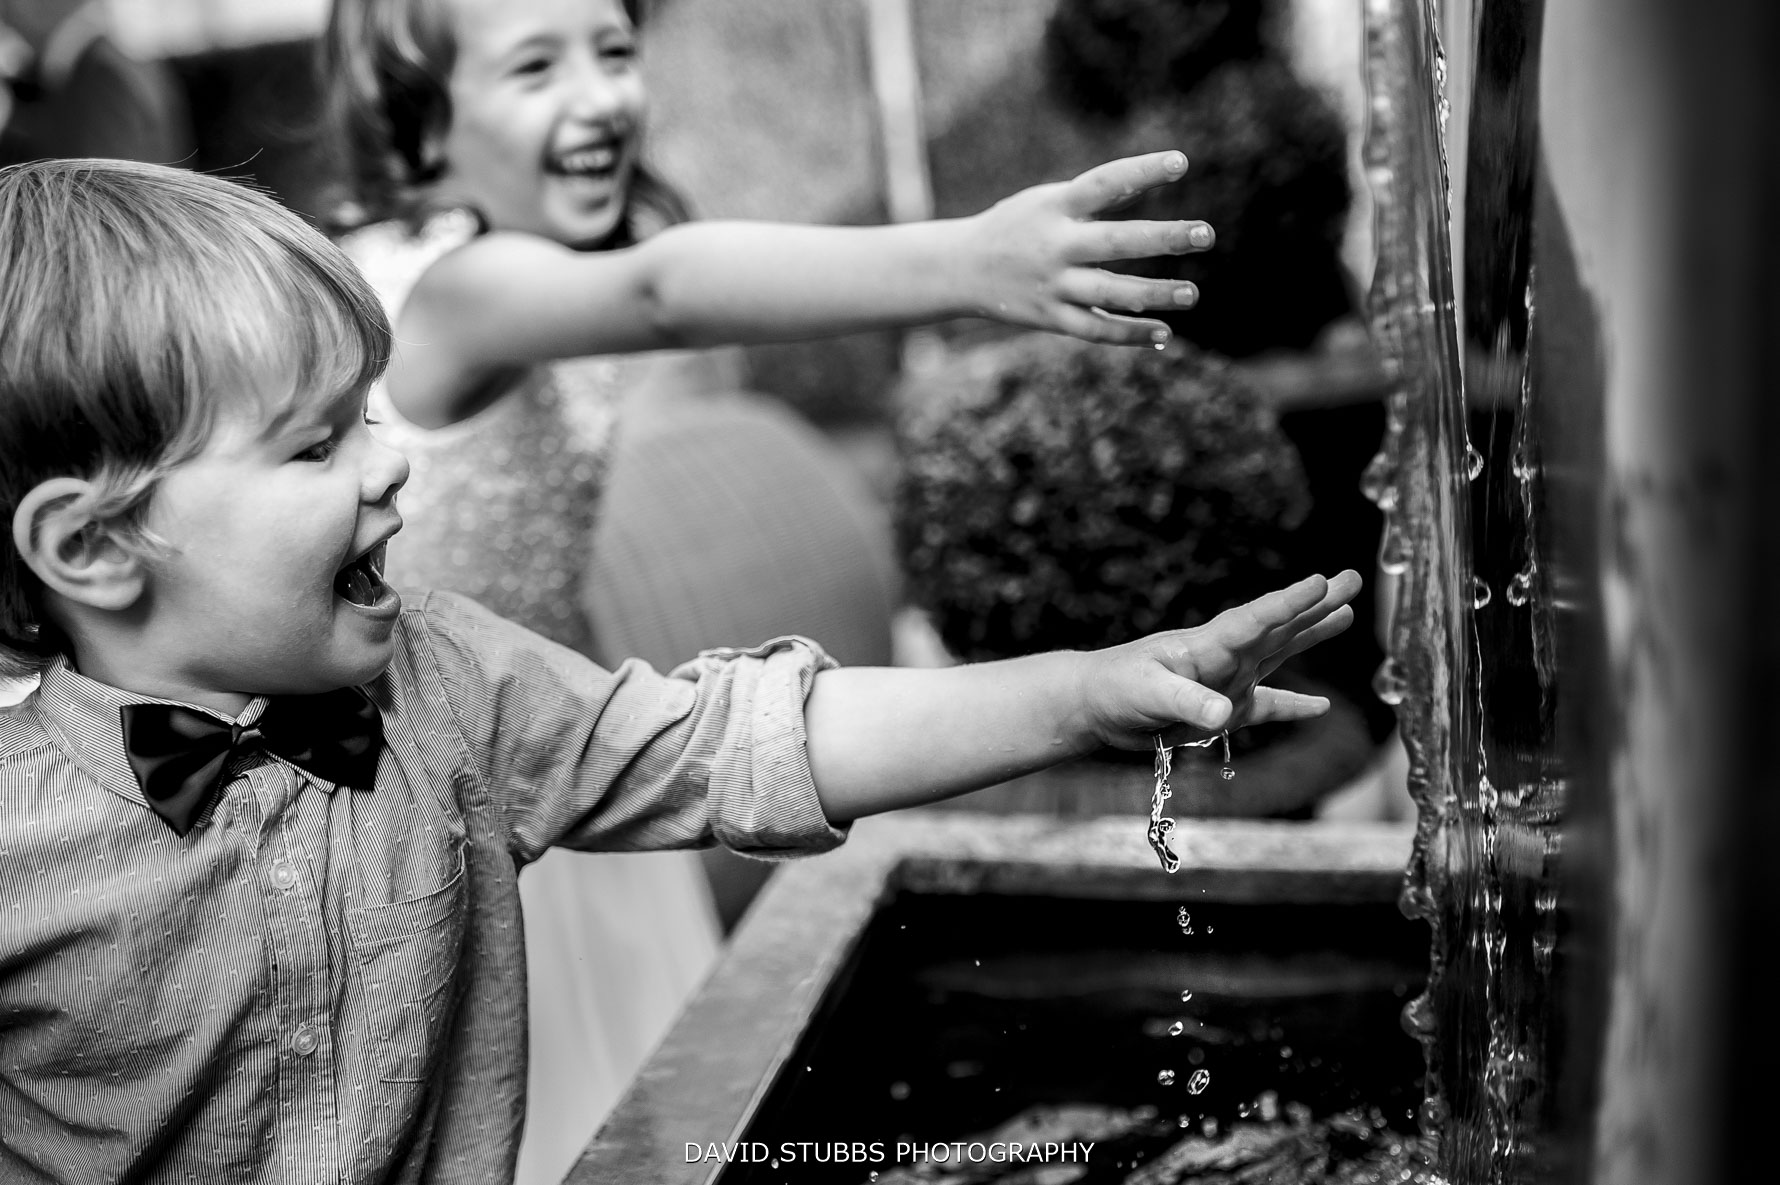 playing with the water fountain feature